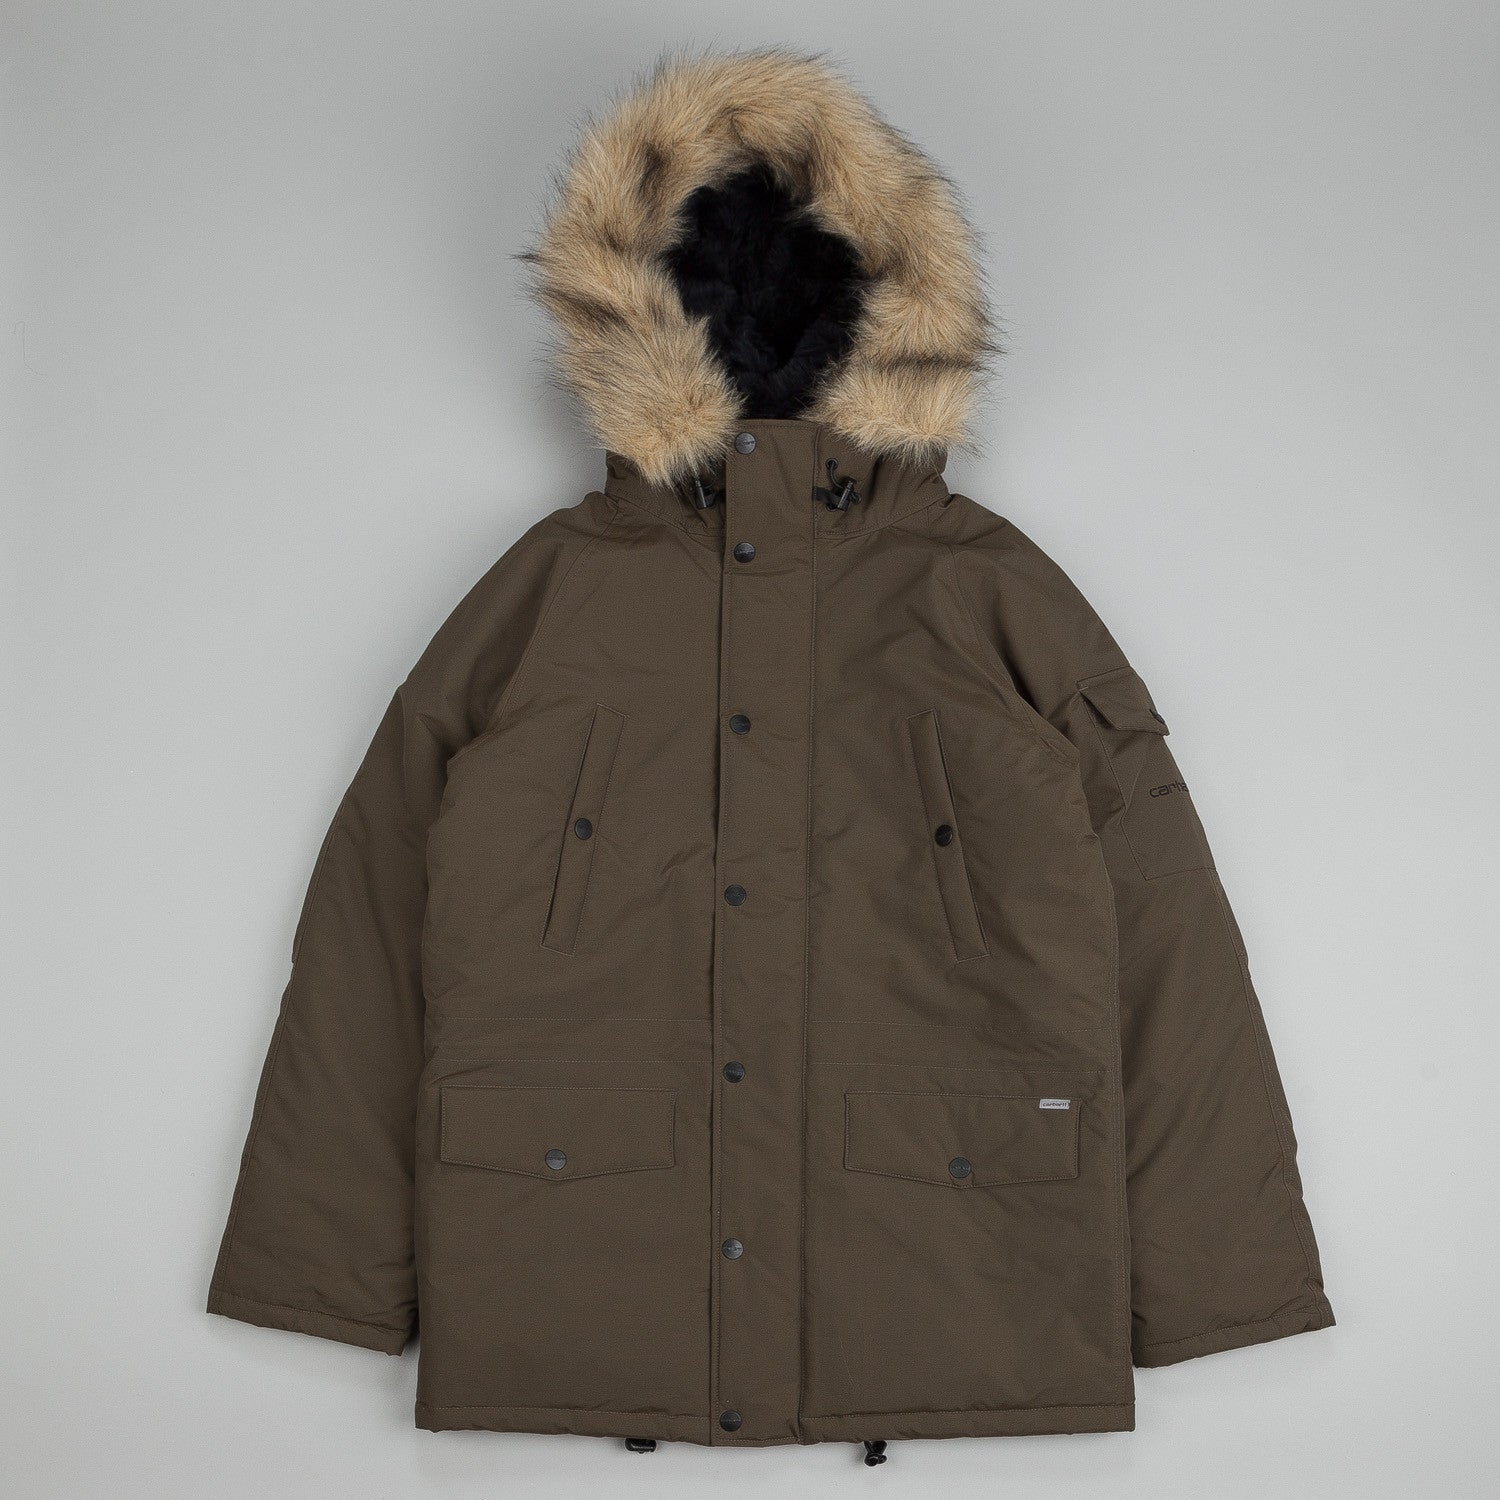 Carhartt Anchorage Parka Cypress / Black